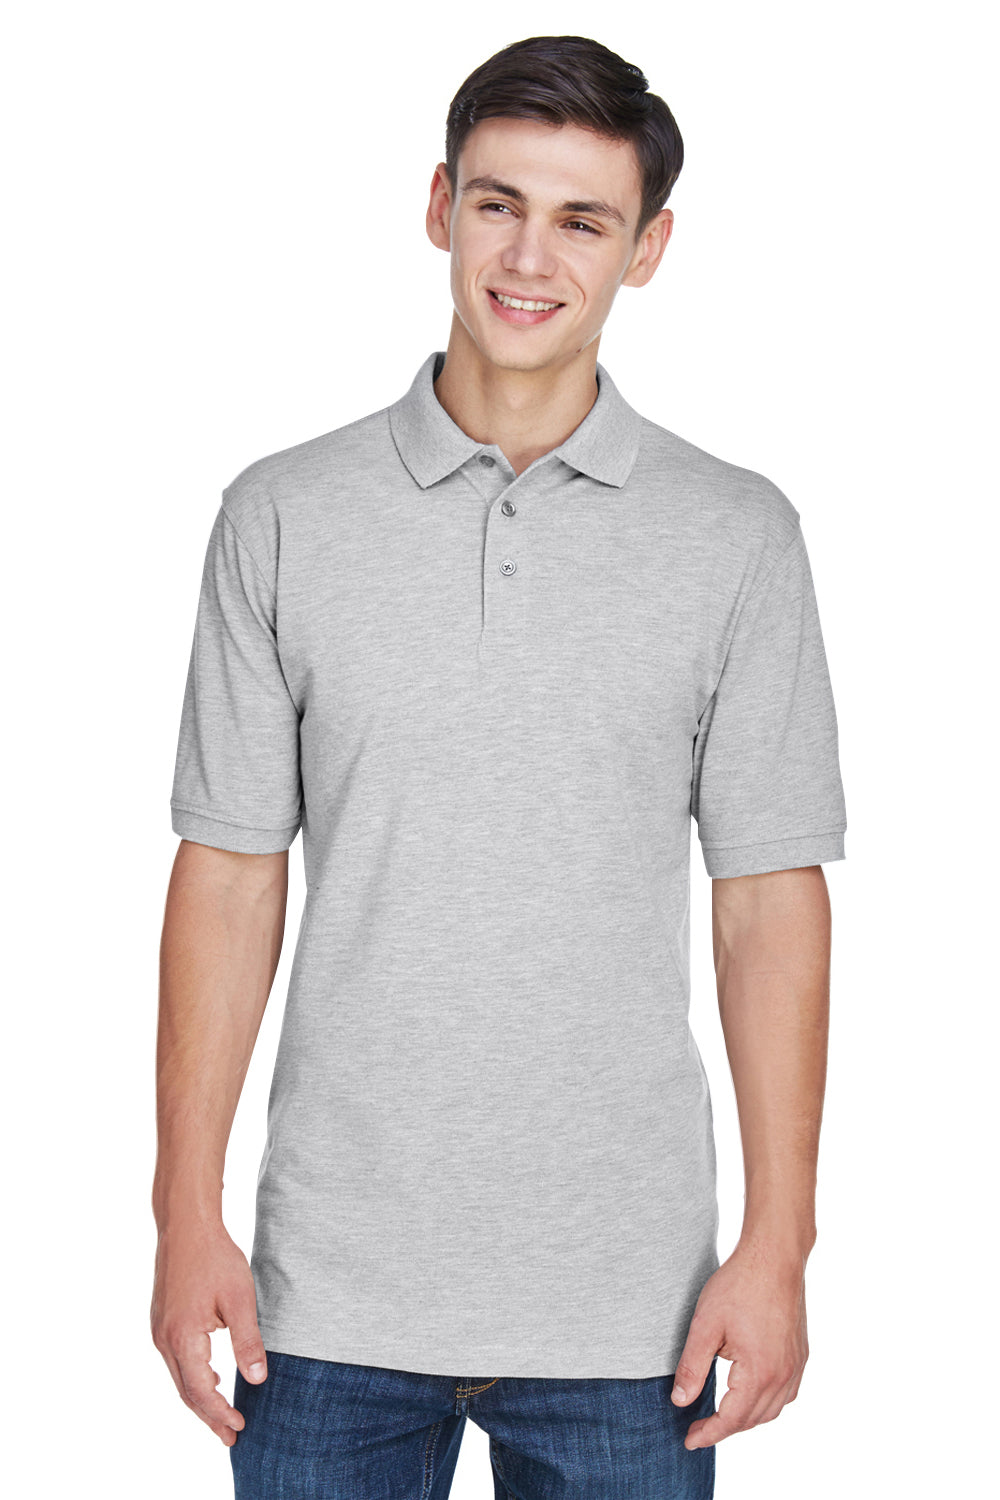 Harriton M265 Mens Easy Blend Wrinkle Resistant Short Sleeve Polo Shirt Heather Grey Front